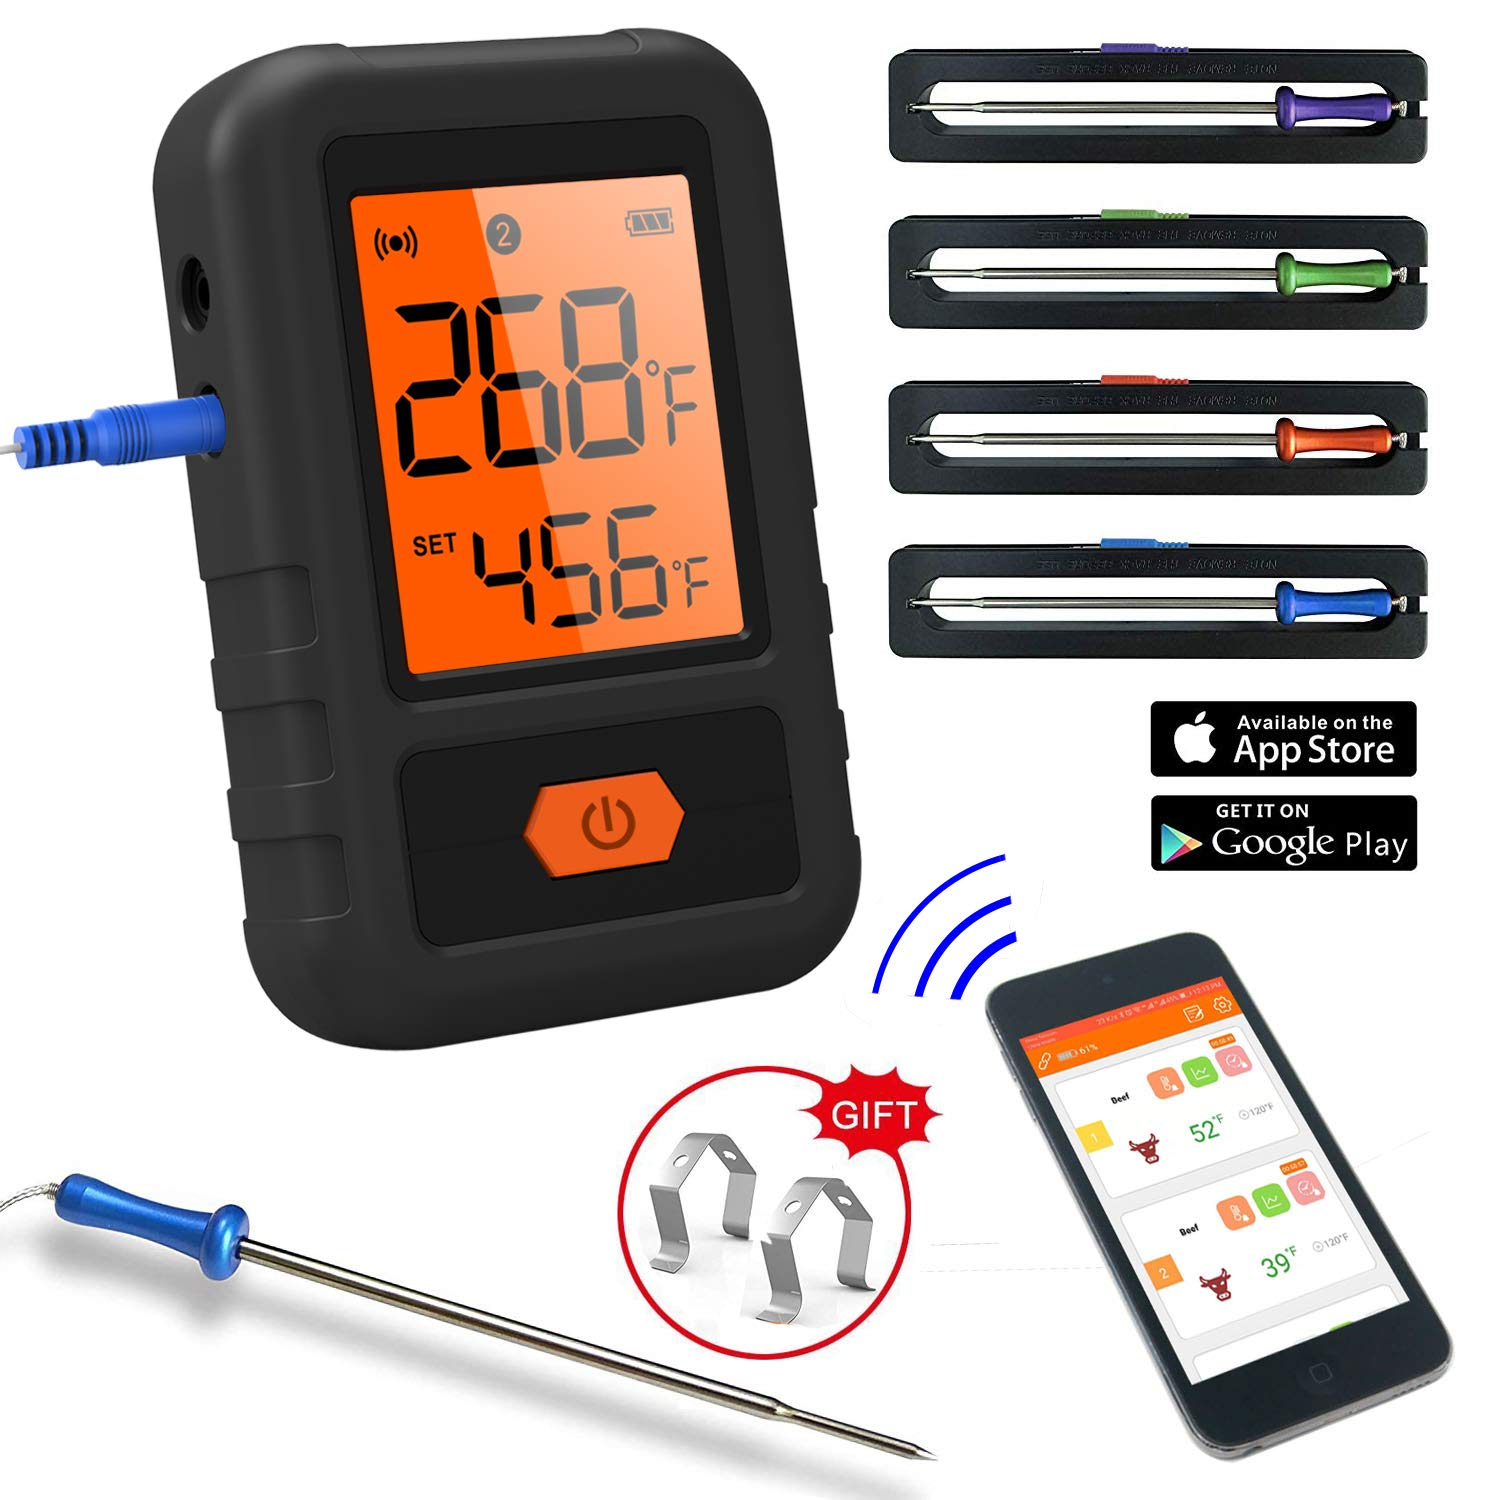 CloudBBQ Wireless Meat Thermometer Bluetooth Instant Read for Grilling Smoking Oven Kittchen Thermometer Food Cooking BBQ Smoker Thermometer Digital Remote with App 4 Probes (Black)